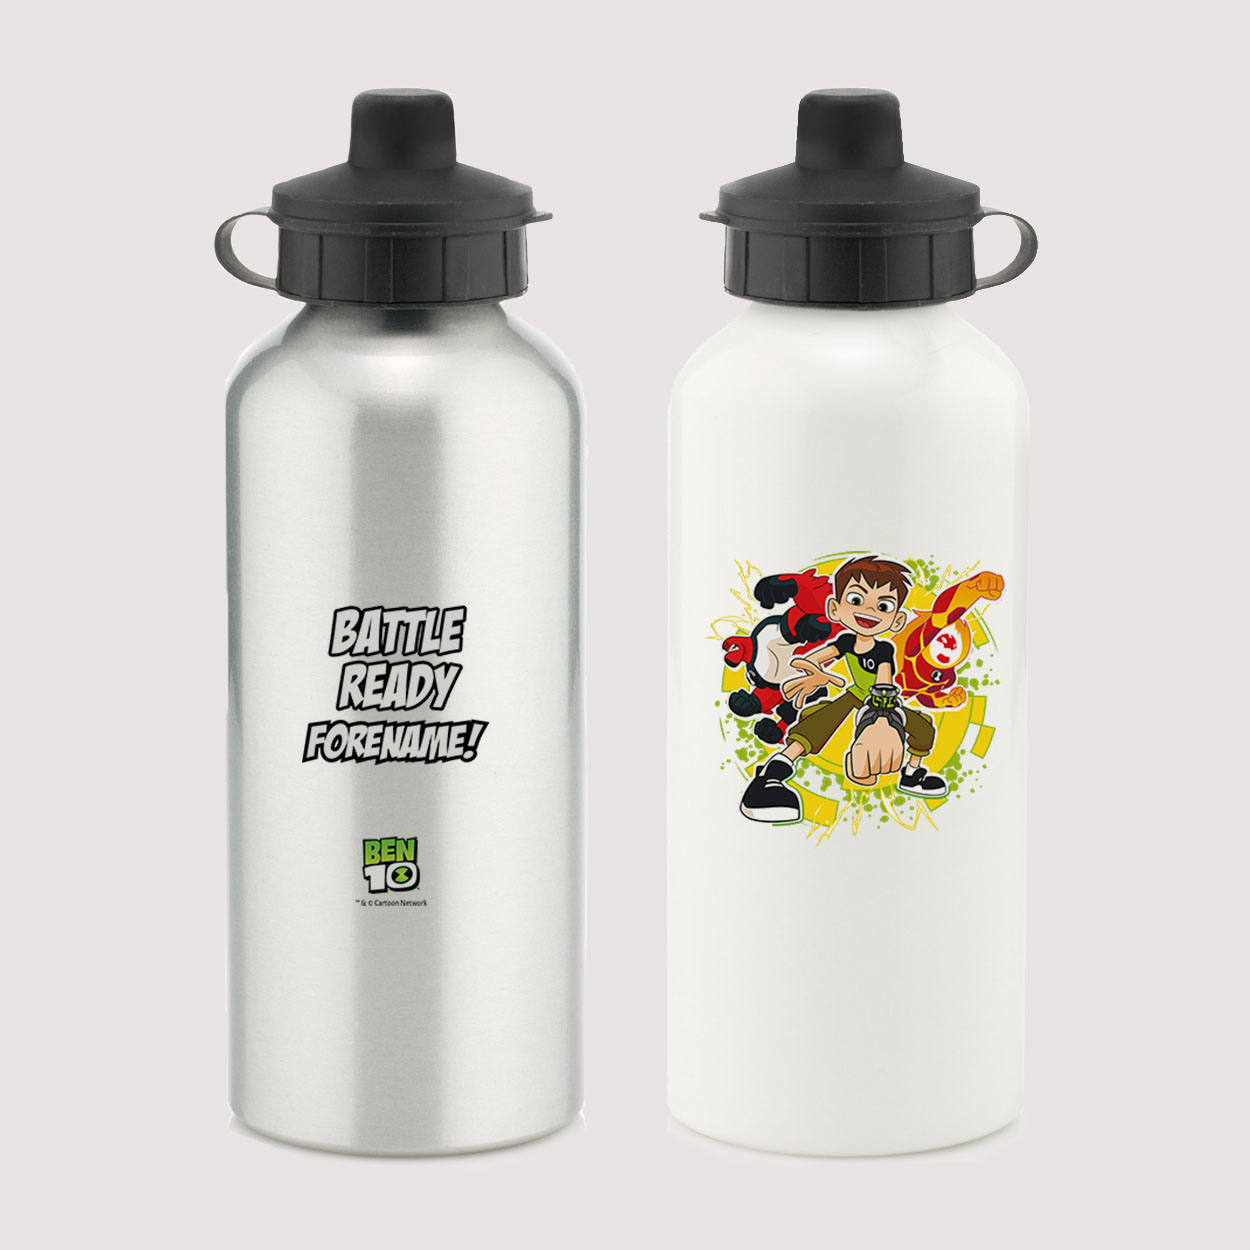 Ben 10 Battle Ready Water Bottle